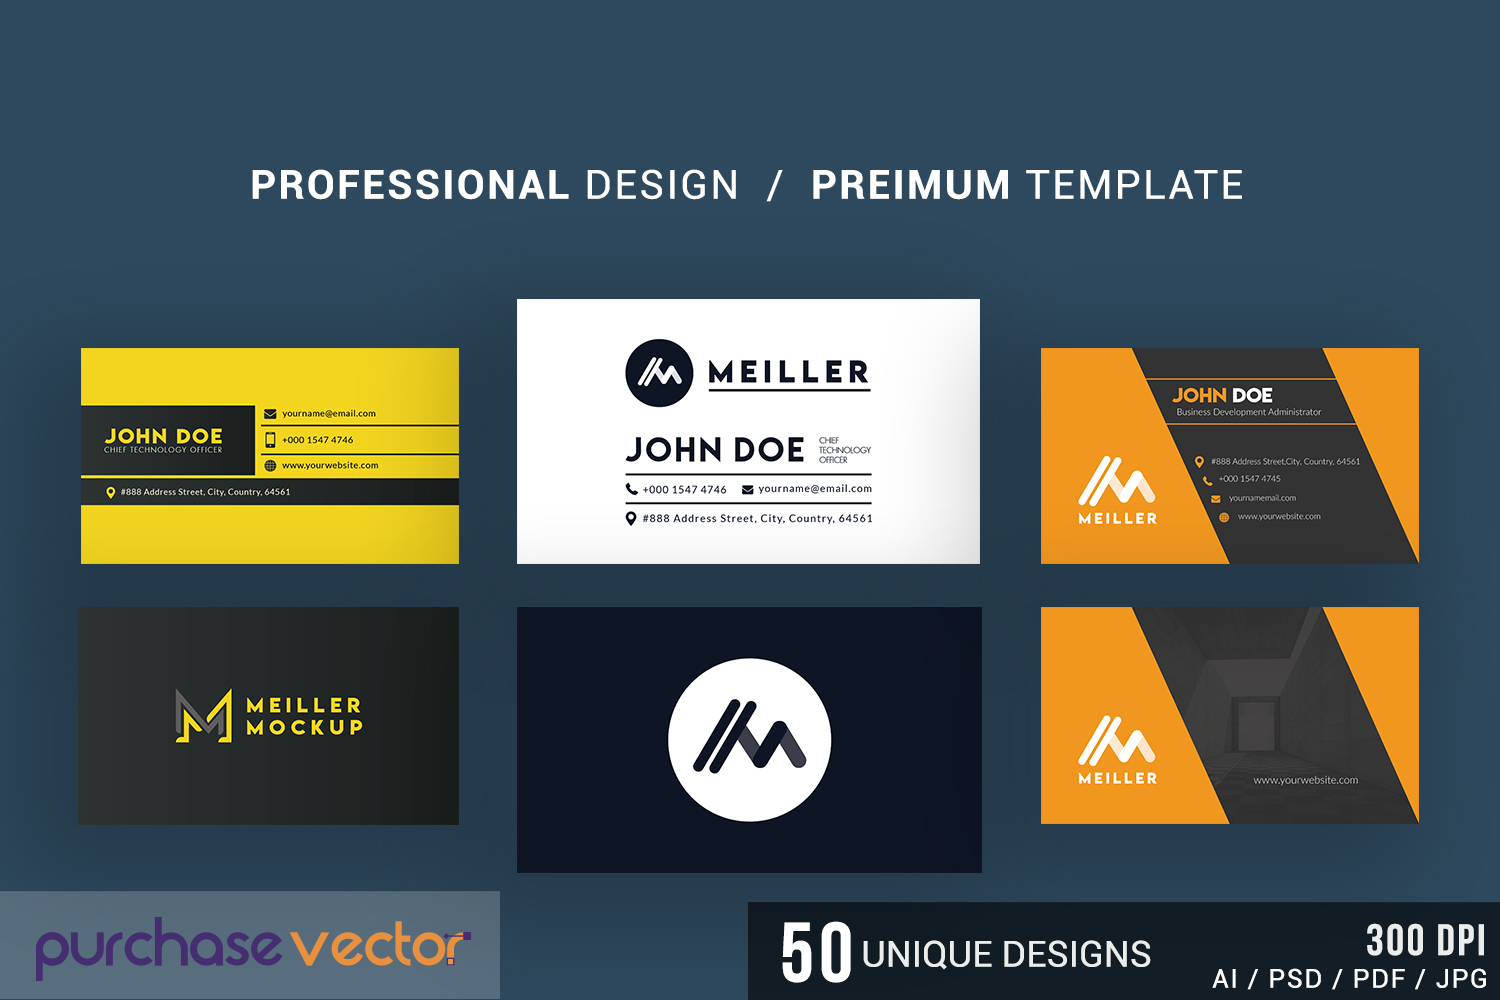 Professional Business Cards Templates example image 4